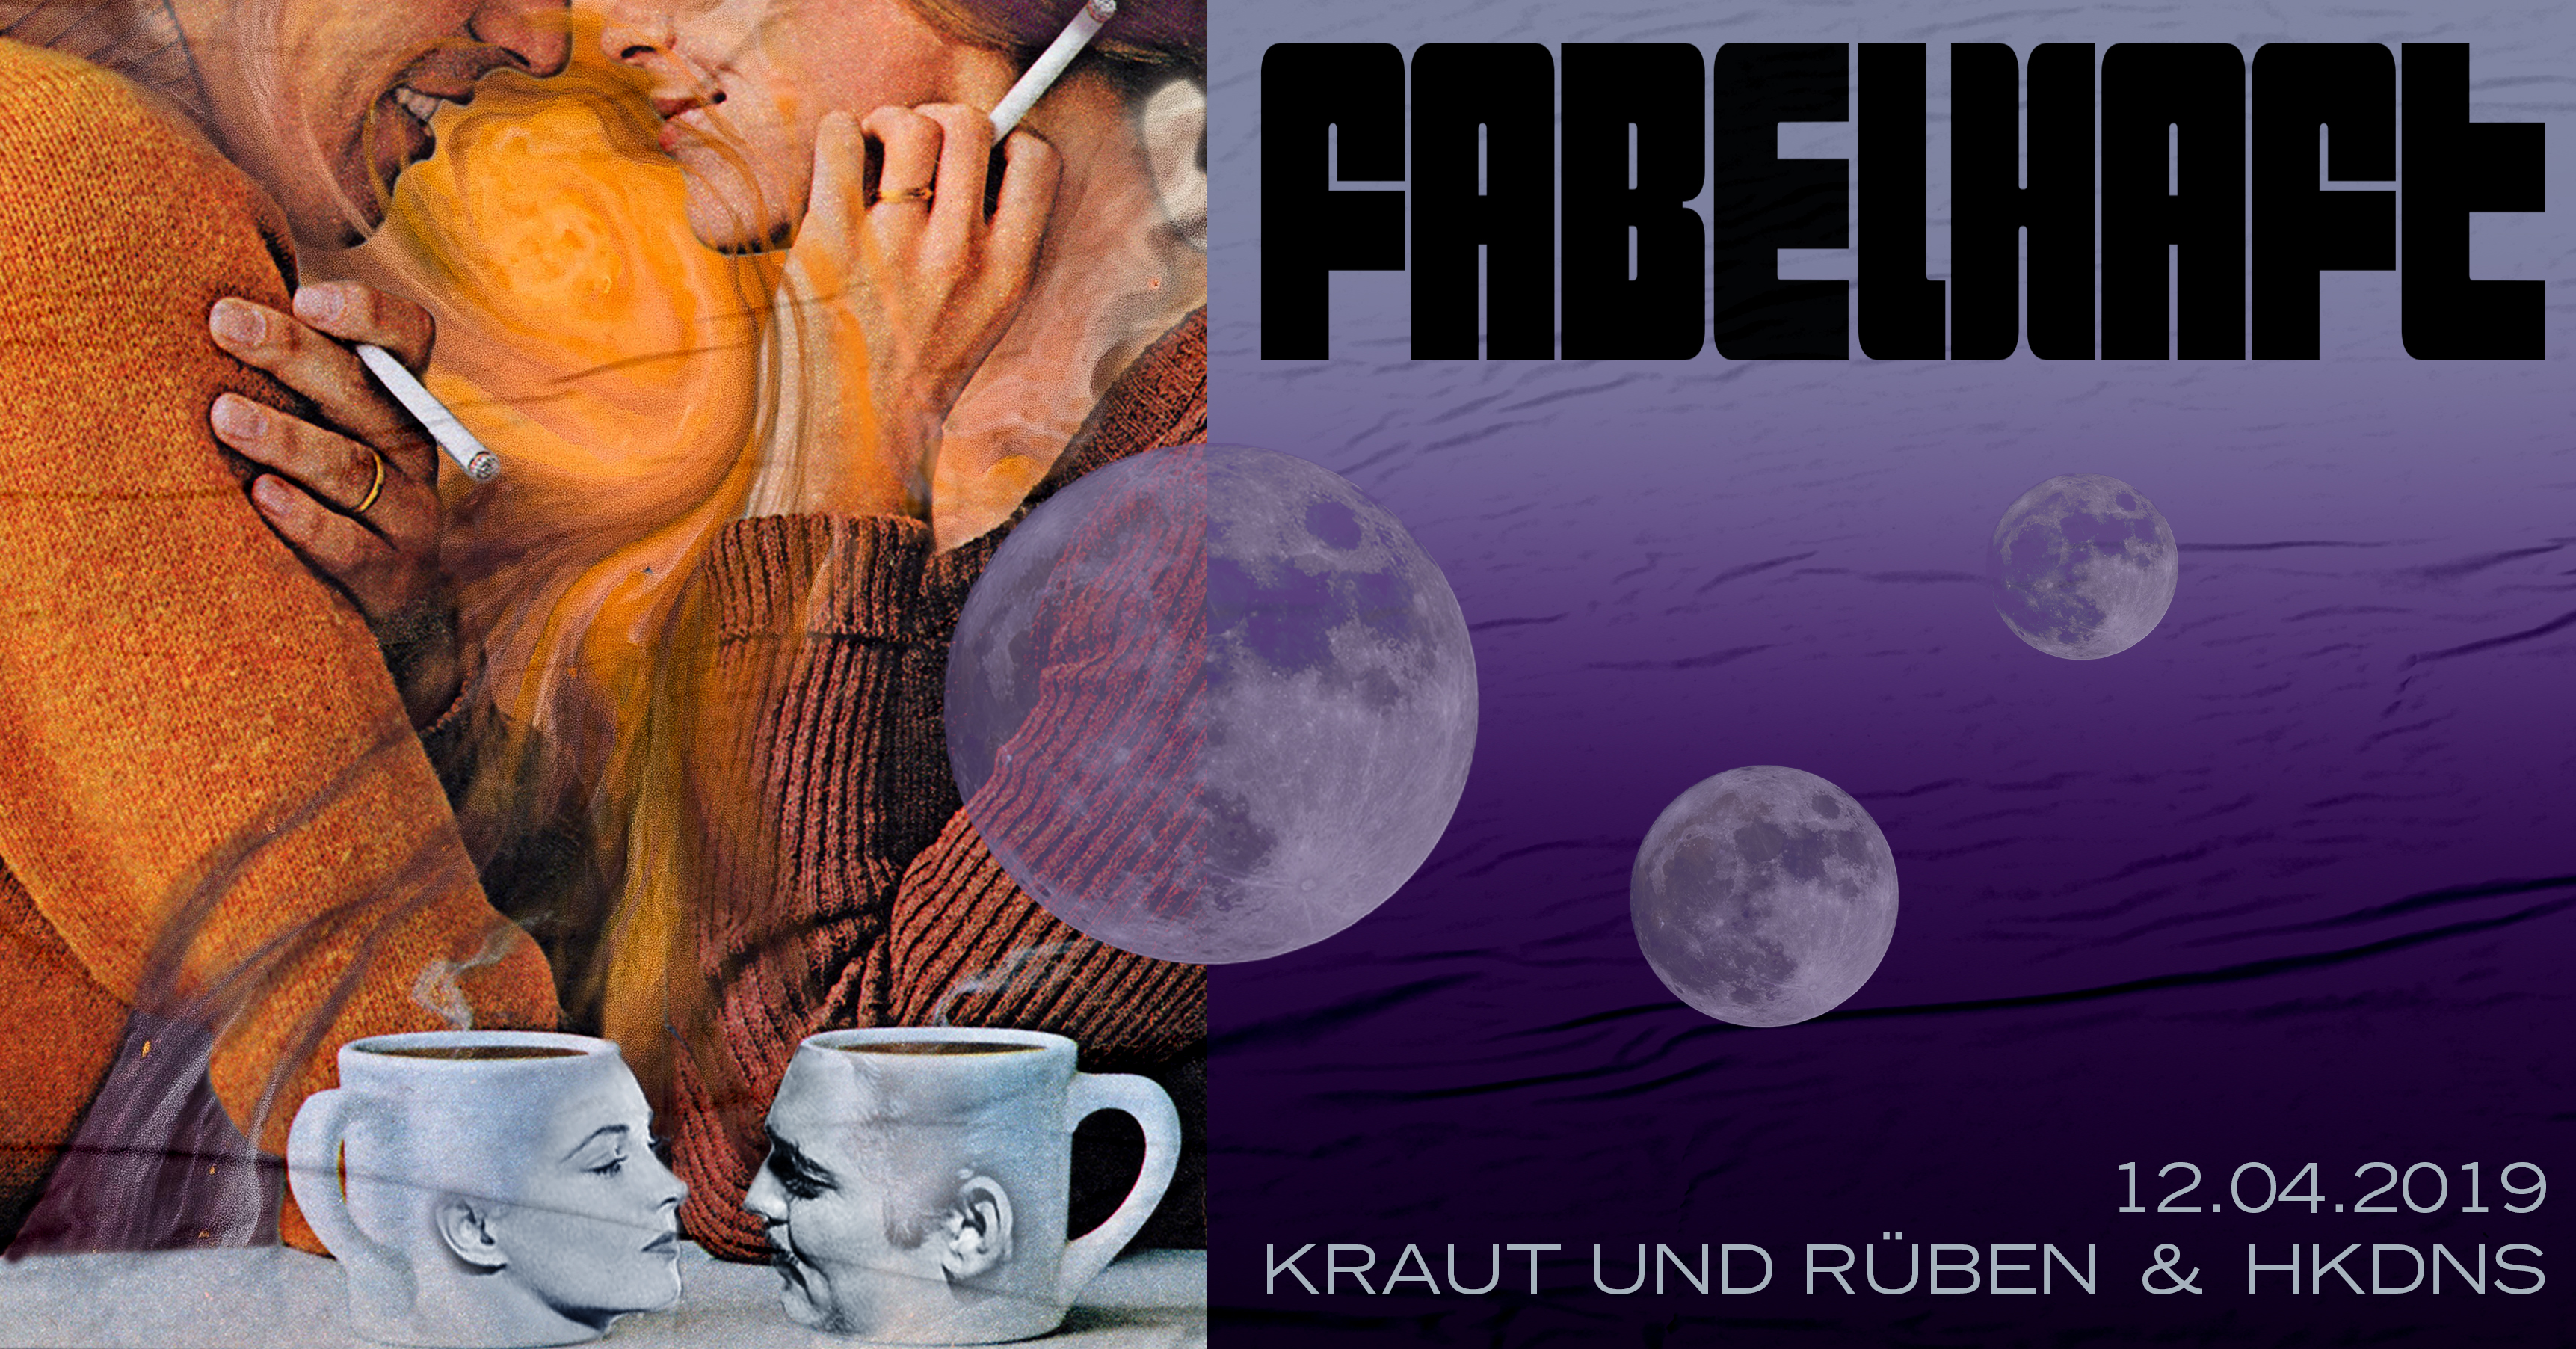 Facebook_fabelhaft_FB_BANNER_2